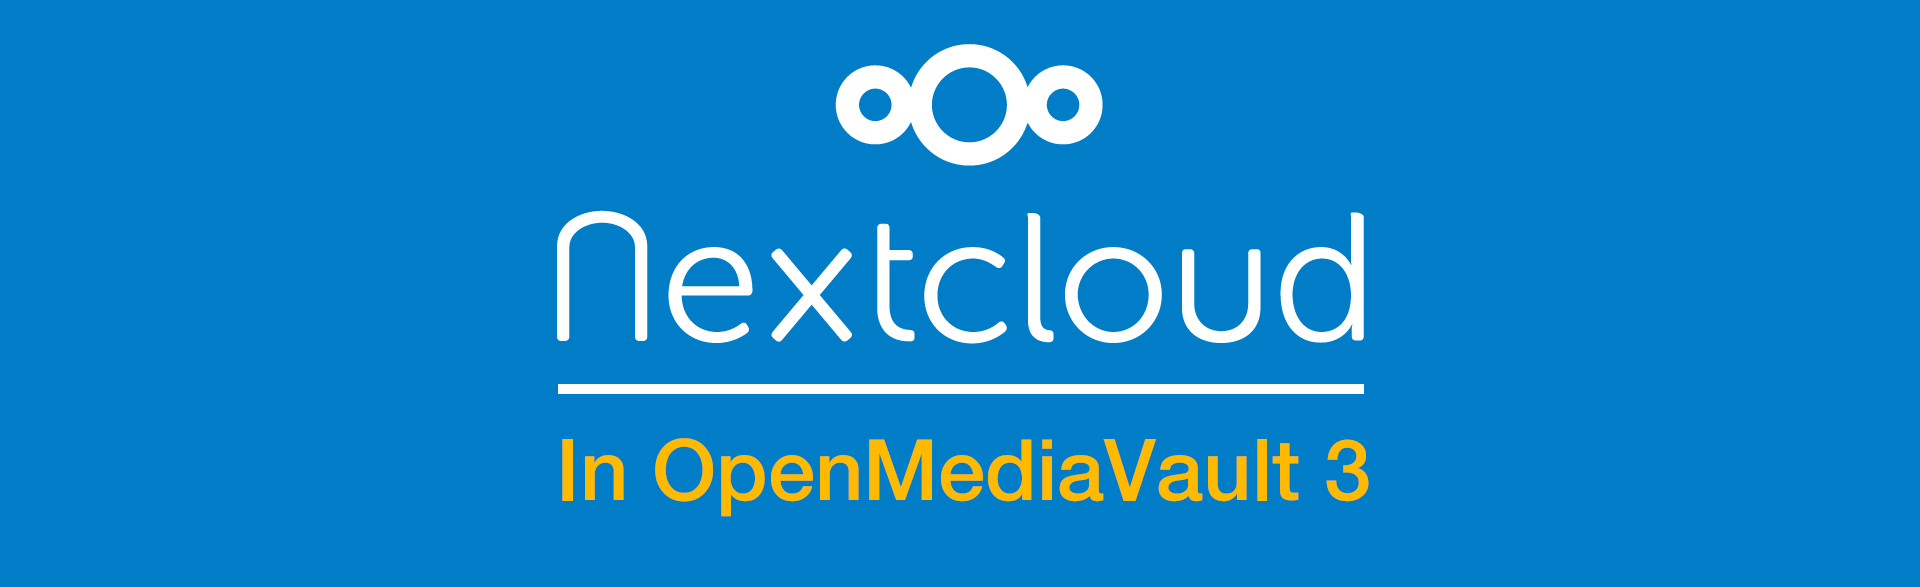 HowTo: Nextcloud unter OpenMediaVault 3 inkl  Fail2Ban